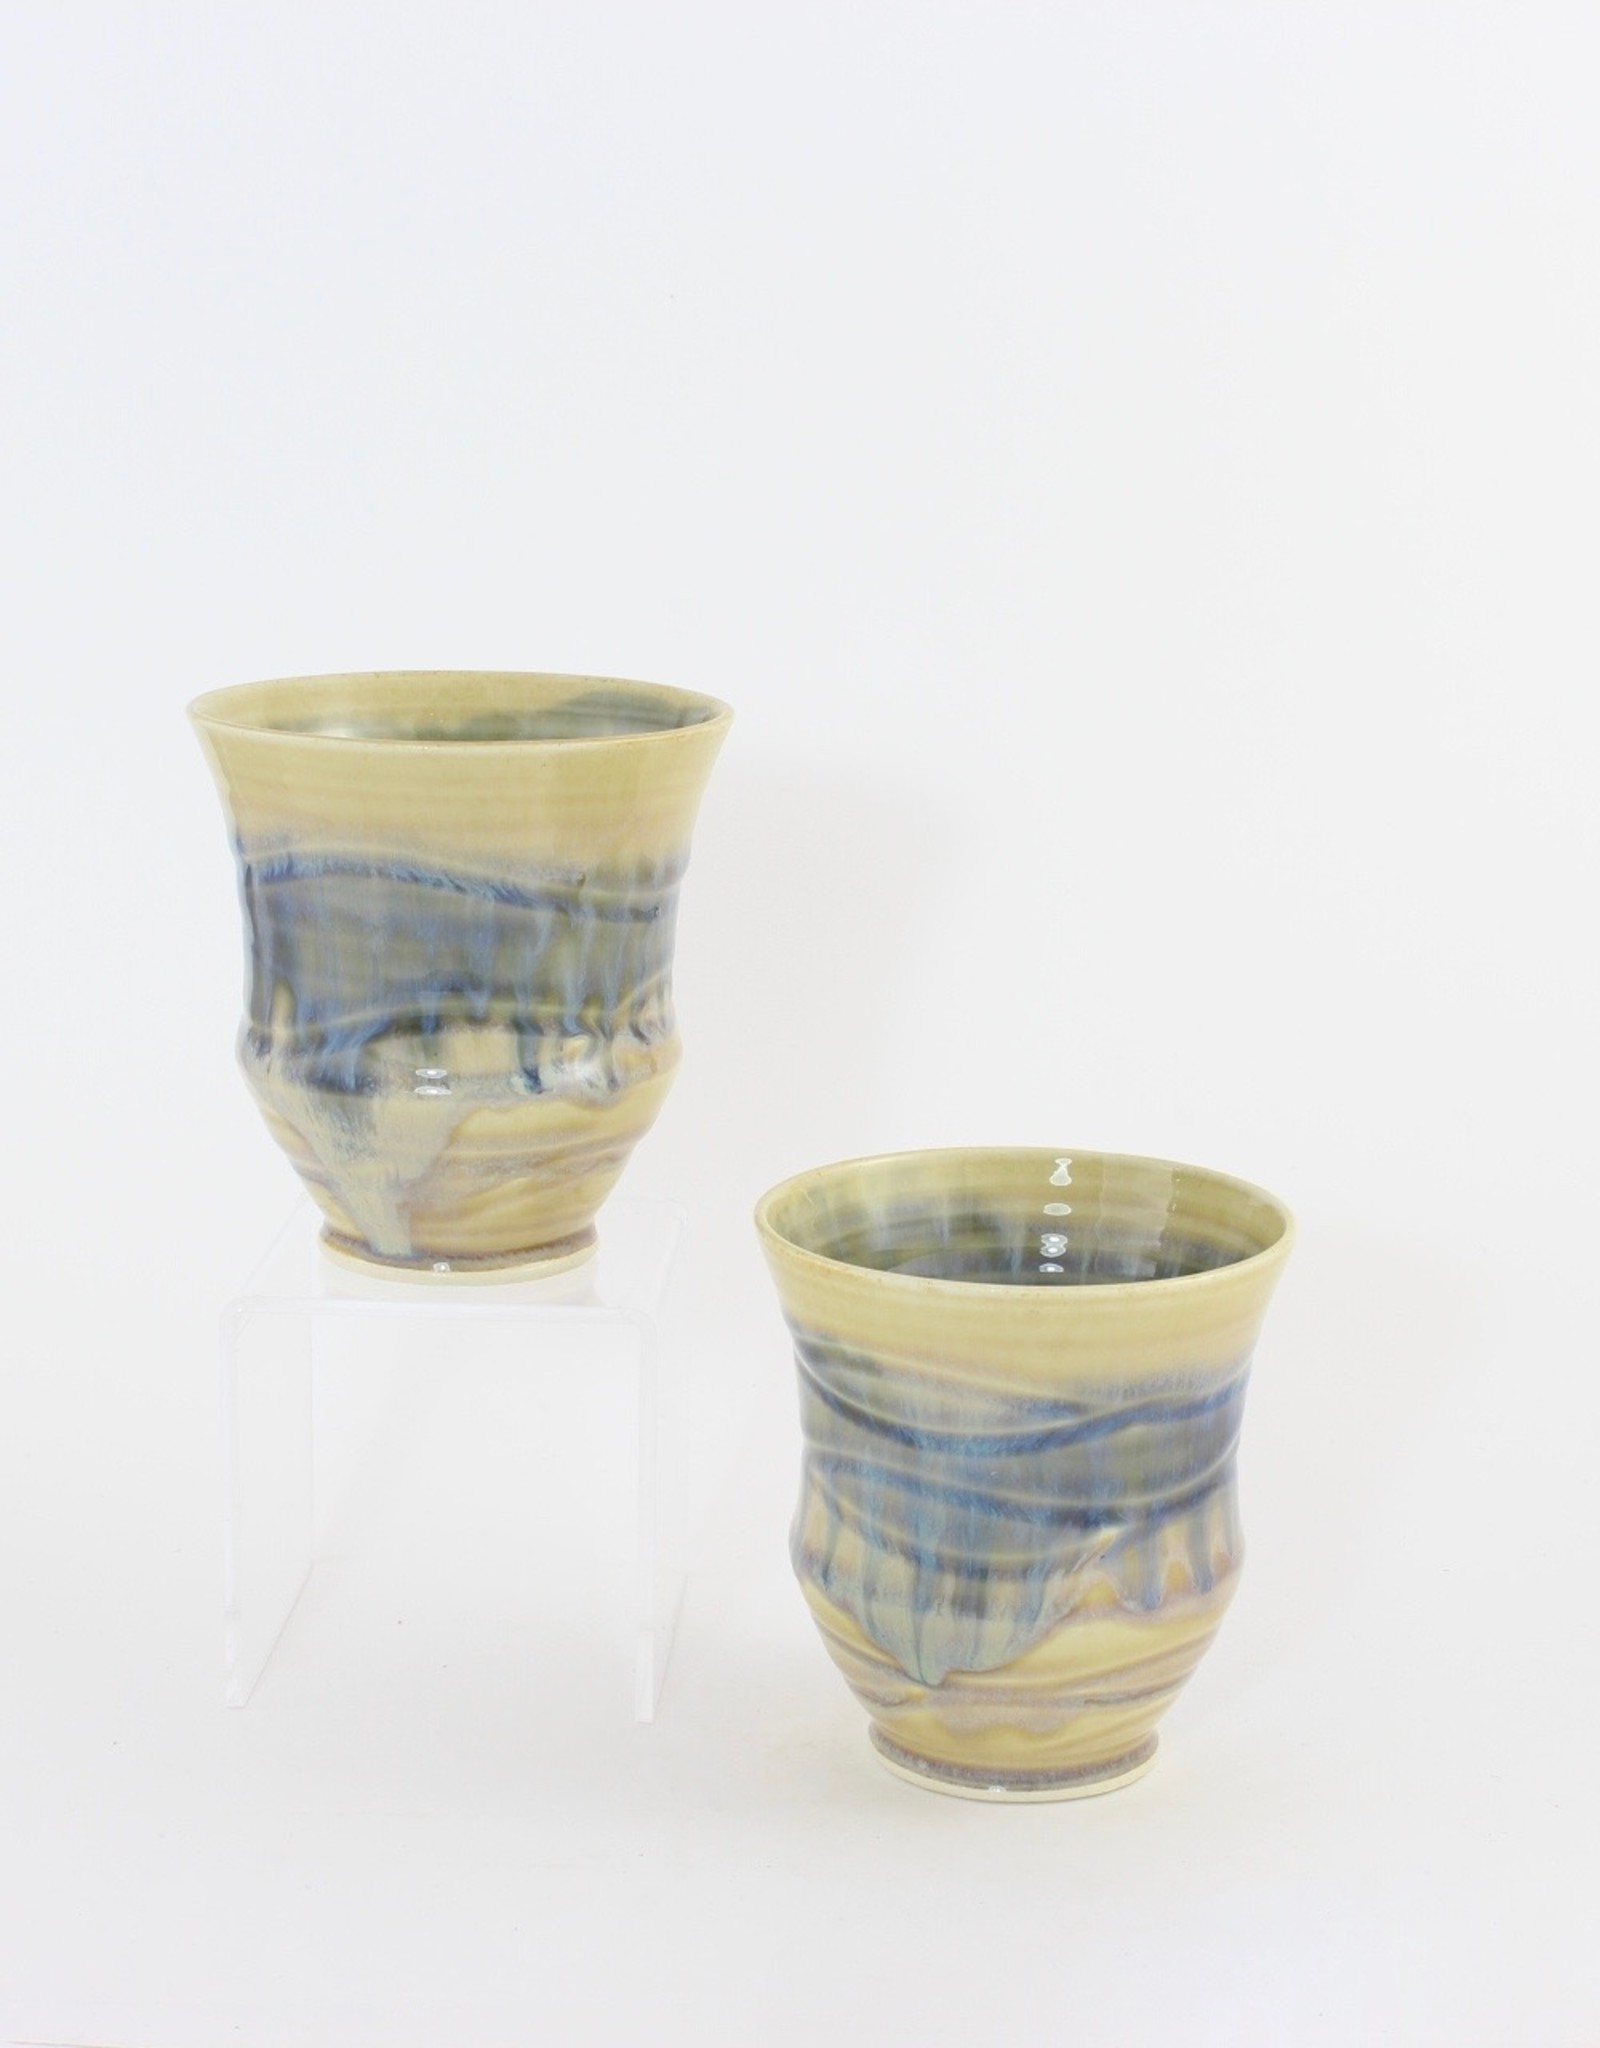 Linda Wright Wine Cups, various glazes, Big Hill Pottery